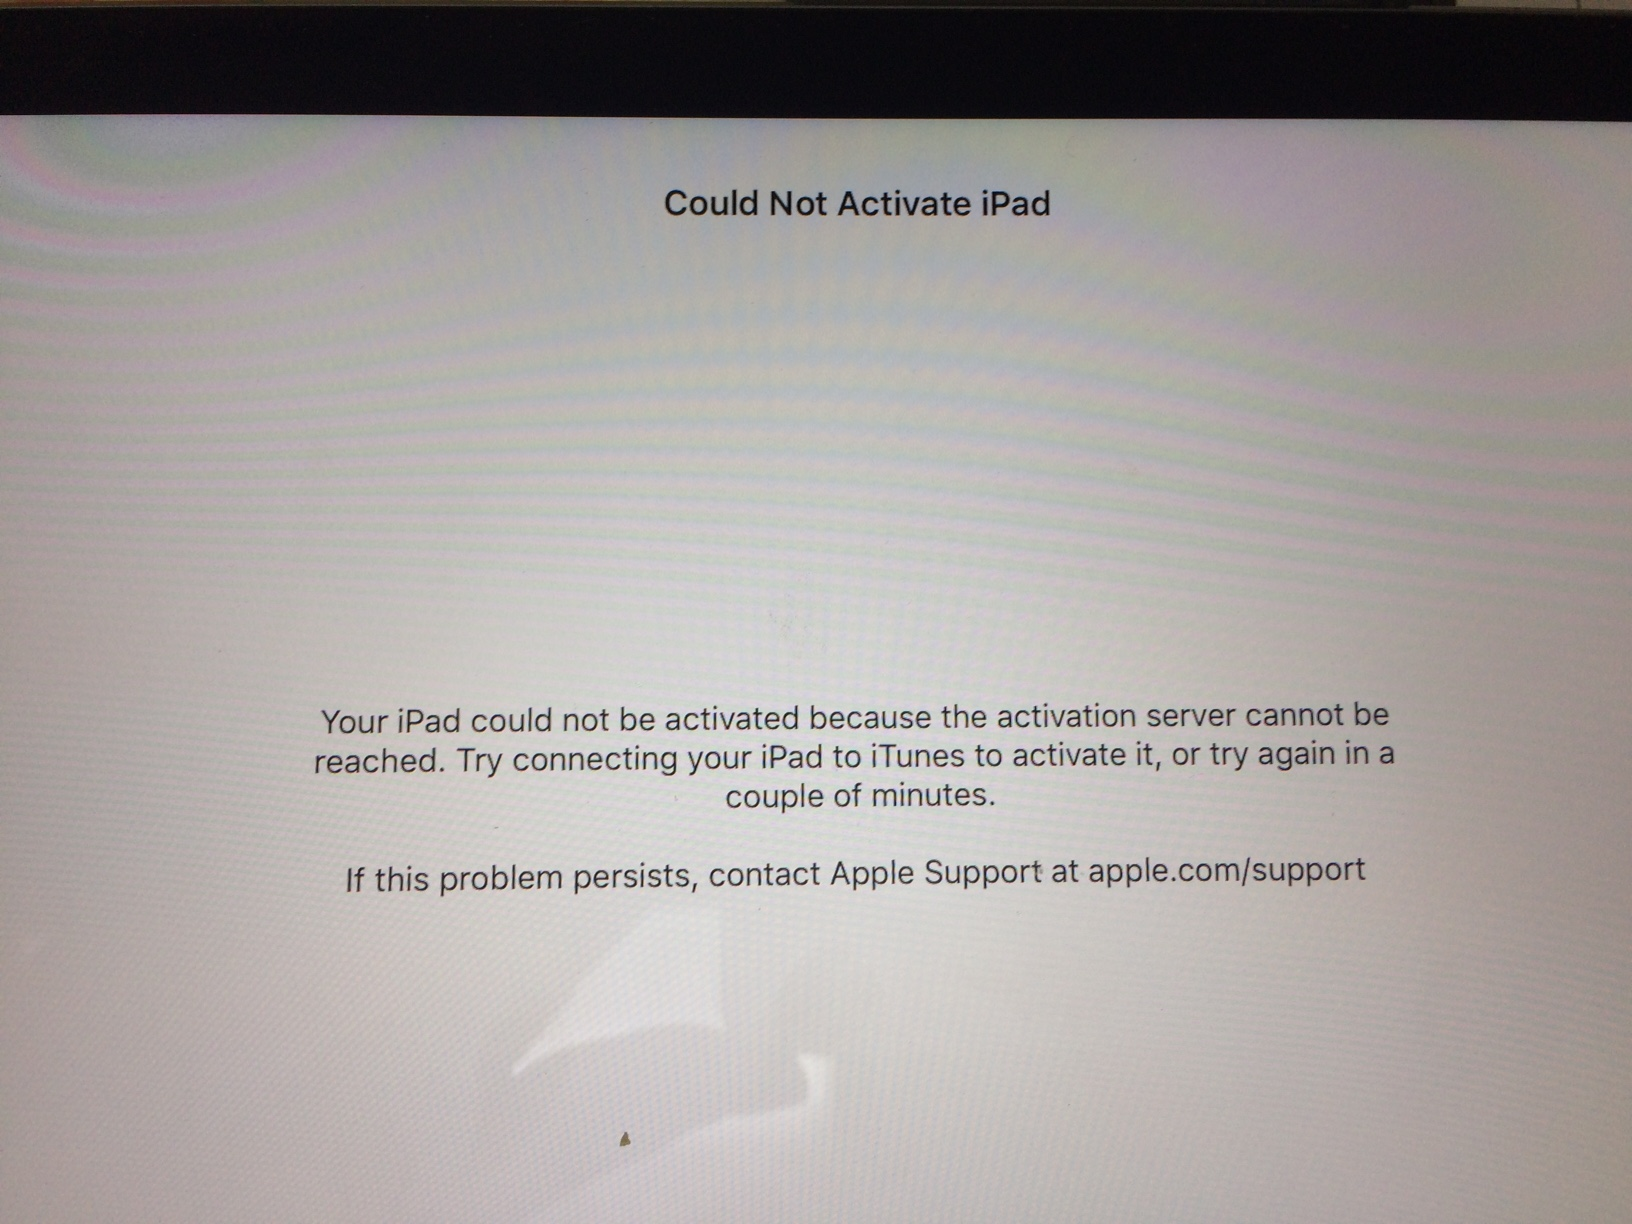 activation server cannot be reached ipad